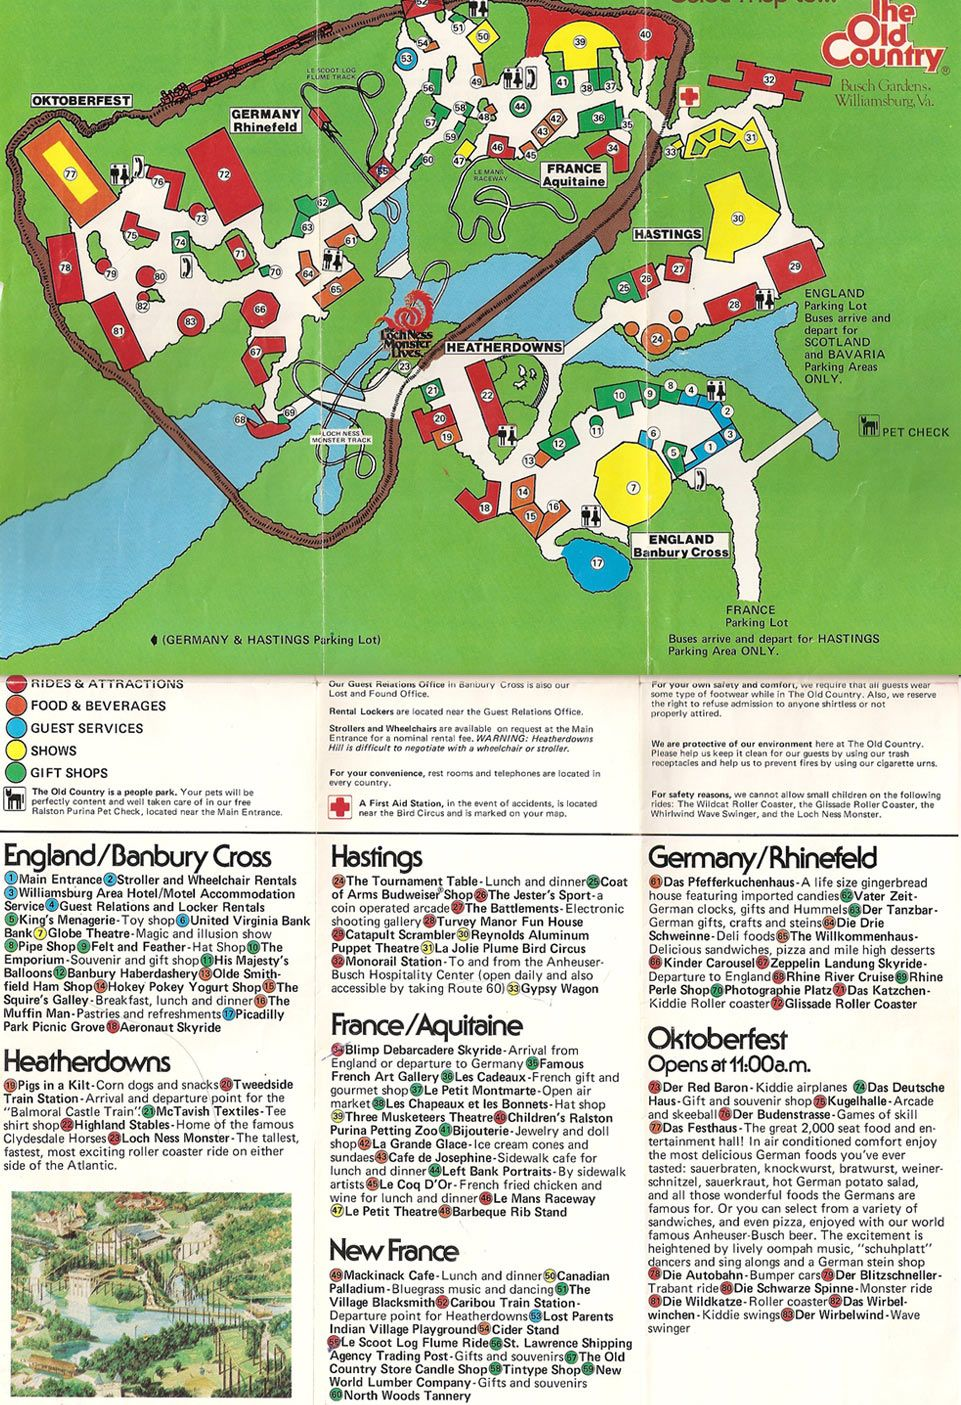 Busch Gardens   The Old Country   1978